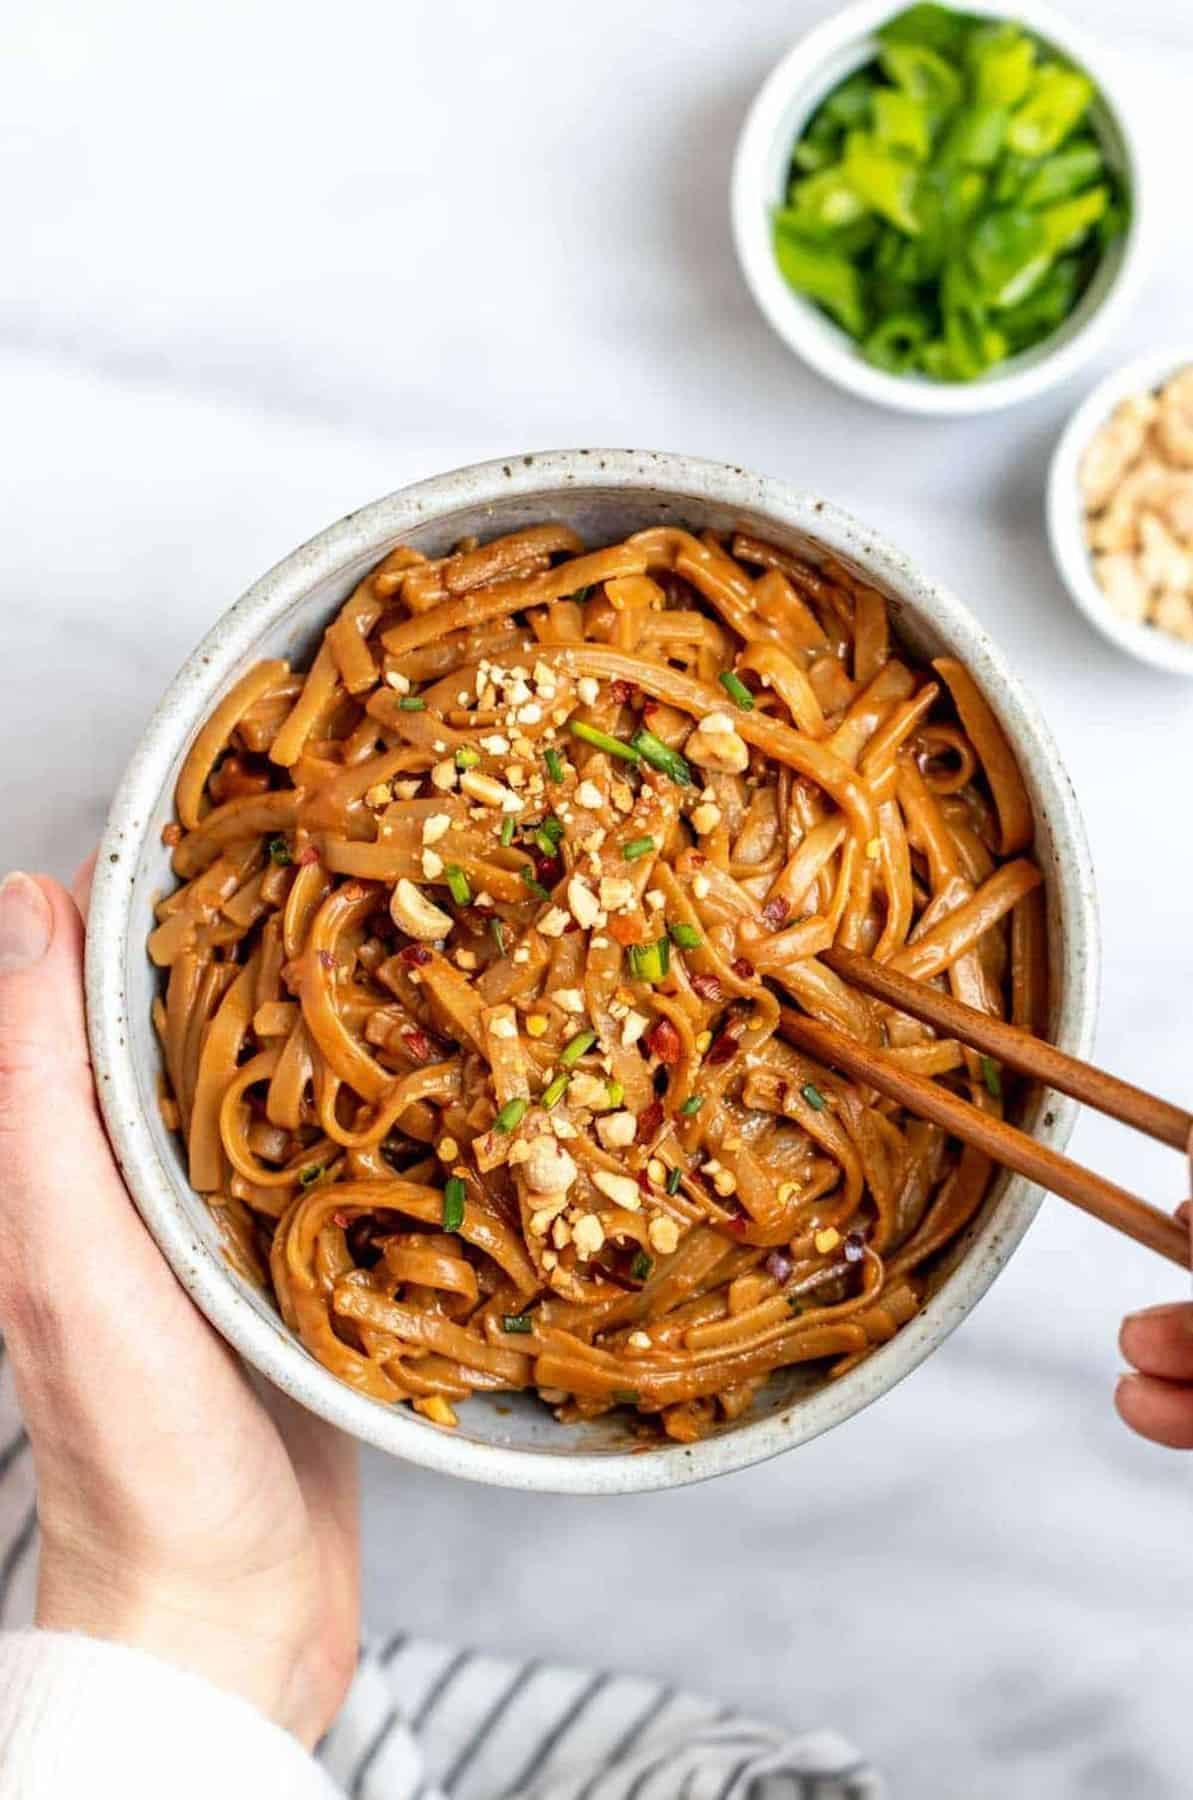 hands holding up a bowl with peanut butter noodles